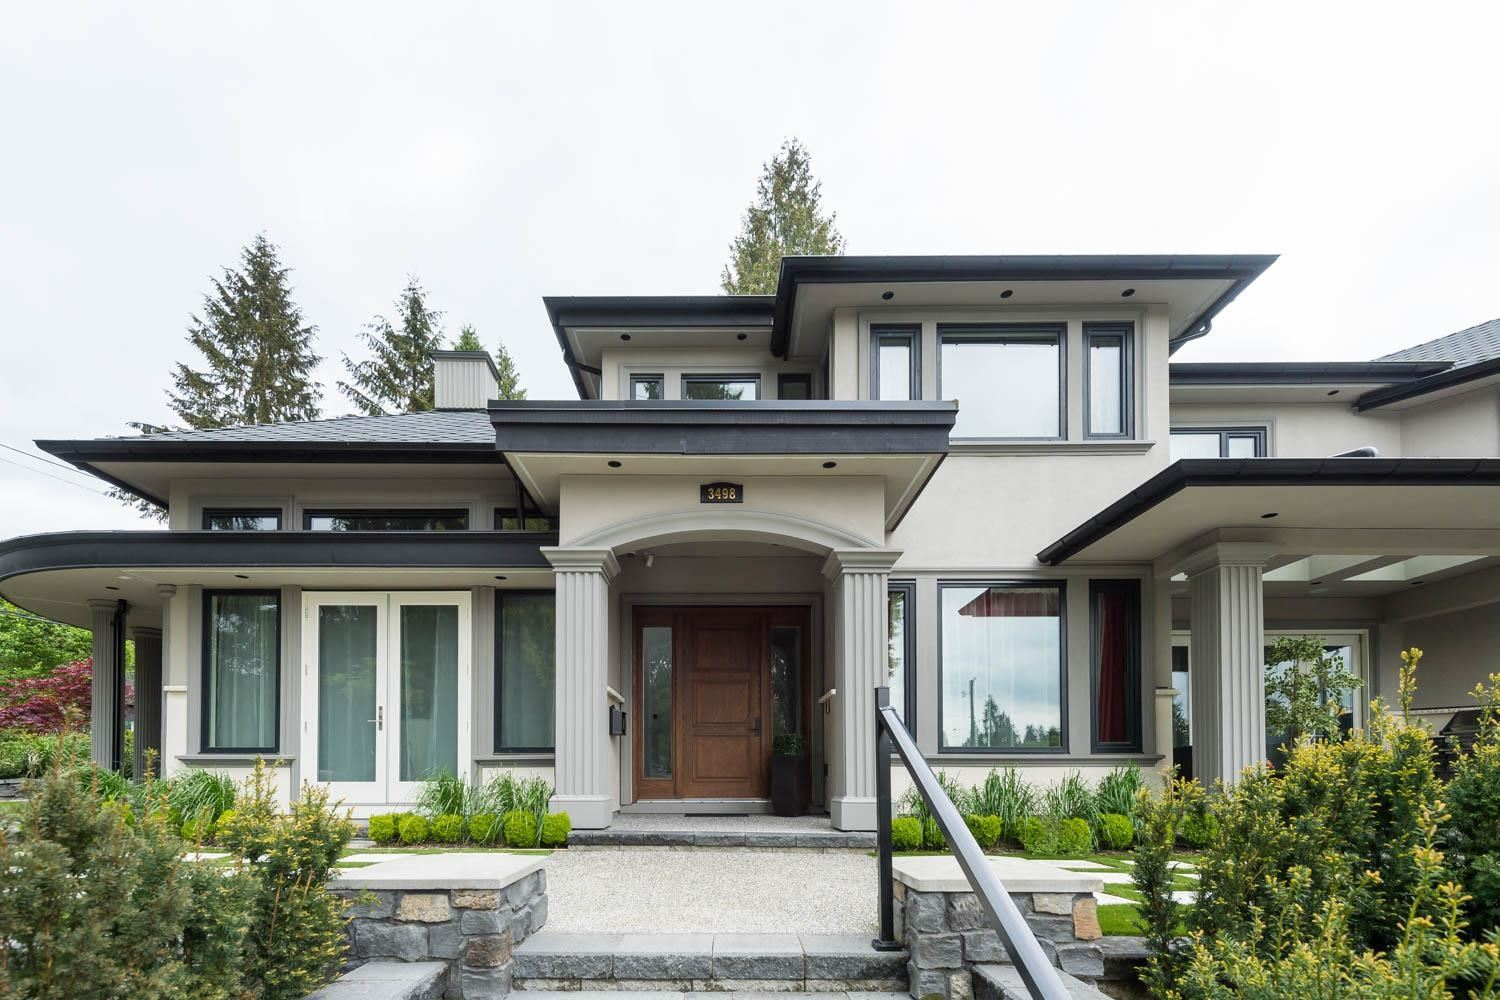 Photo of 3498 SUNSET BOULEVARD, North Vancouver, BC V7R 3X7 (MLS # R2564336)